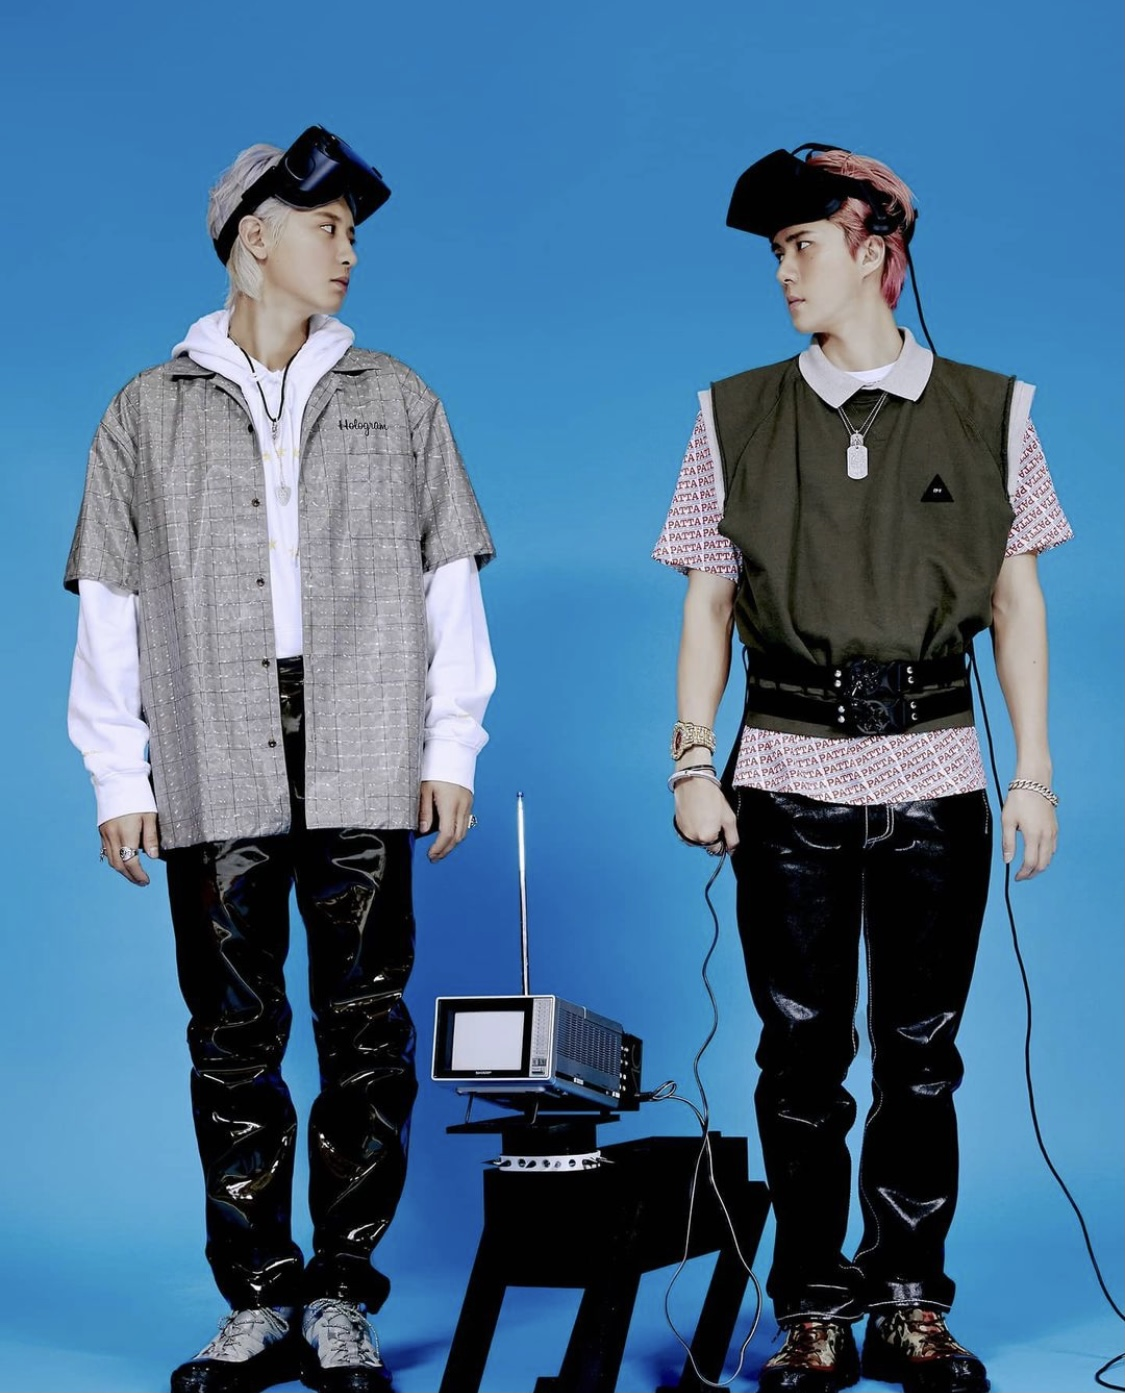 Park Chanyeol and Oh Sehun, wearing VR headsets in front of a blue backdrop, facing the camera but looking towards each other.